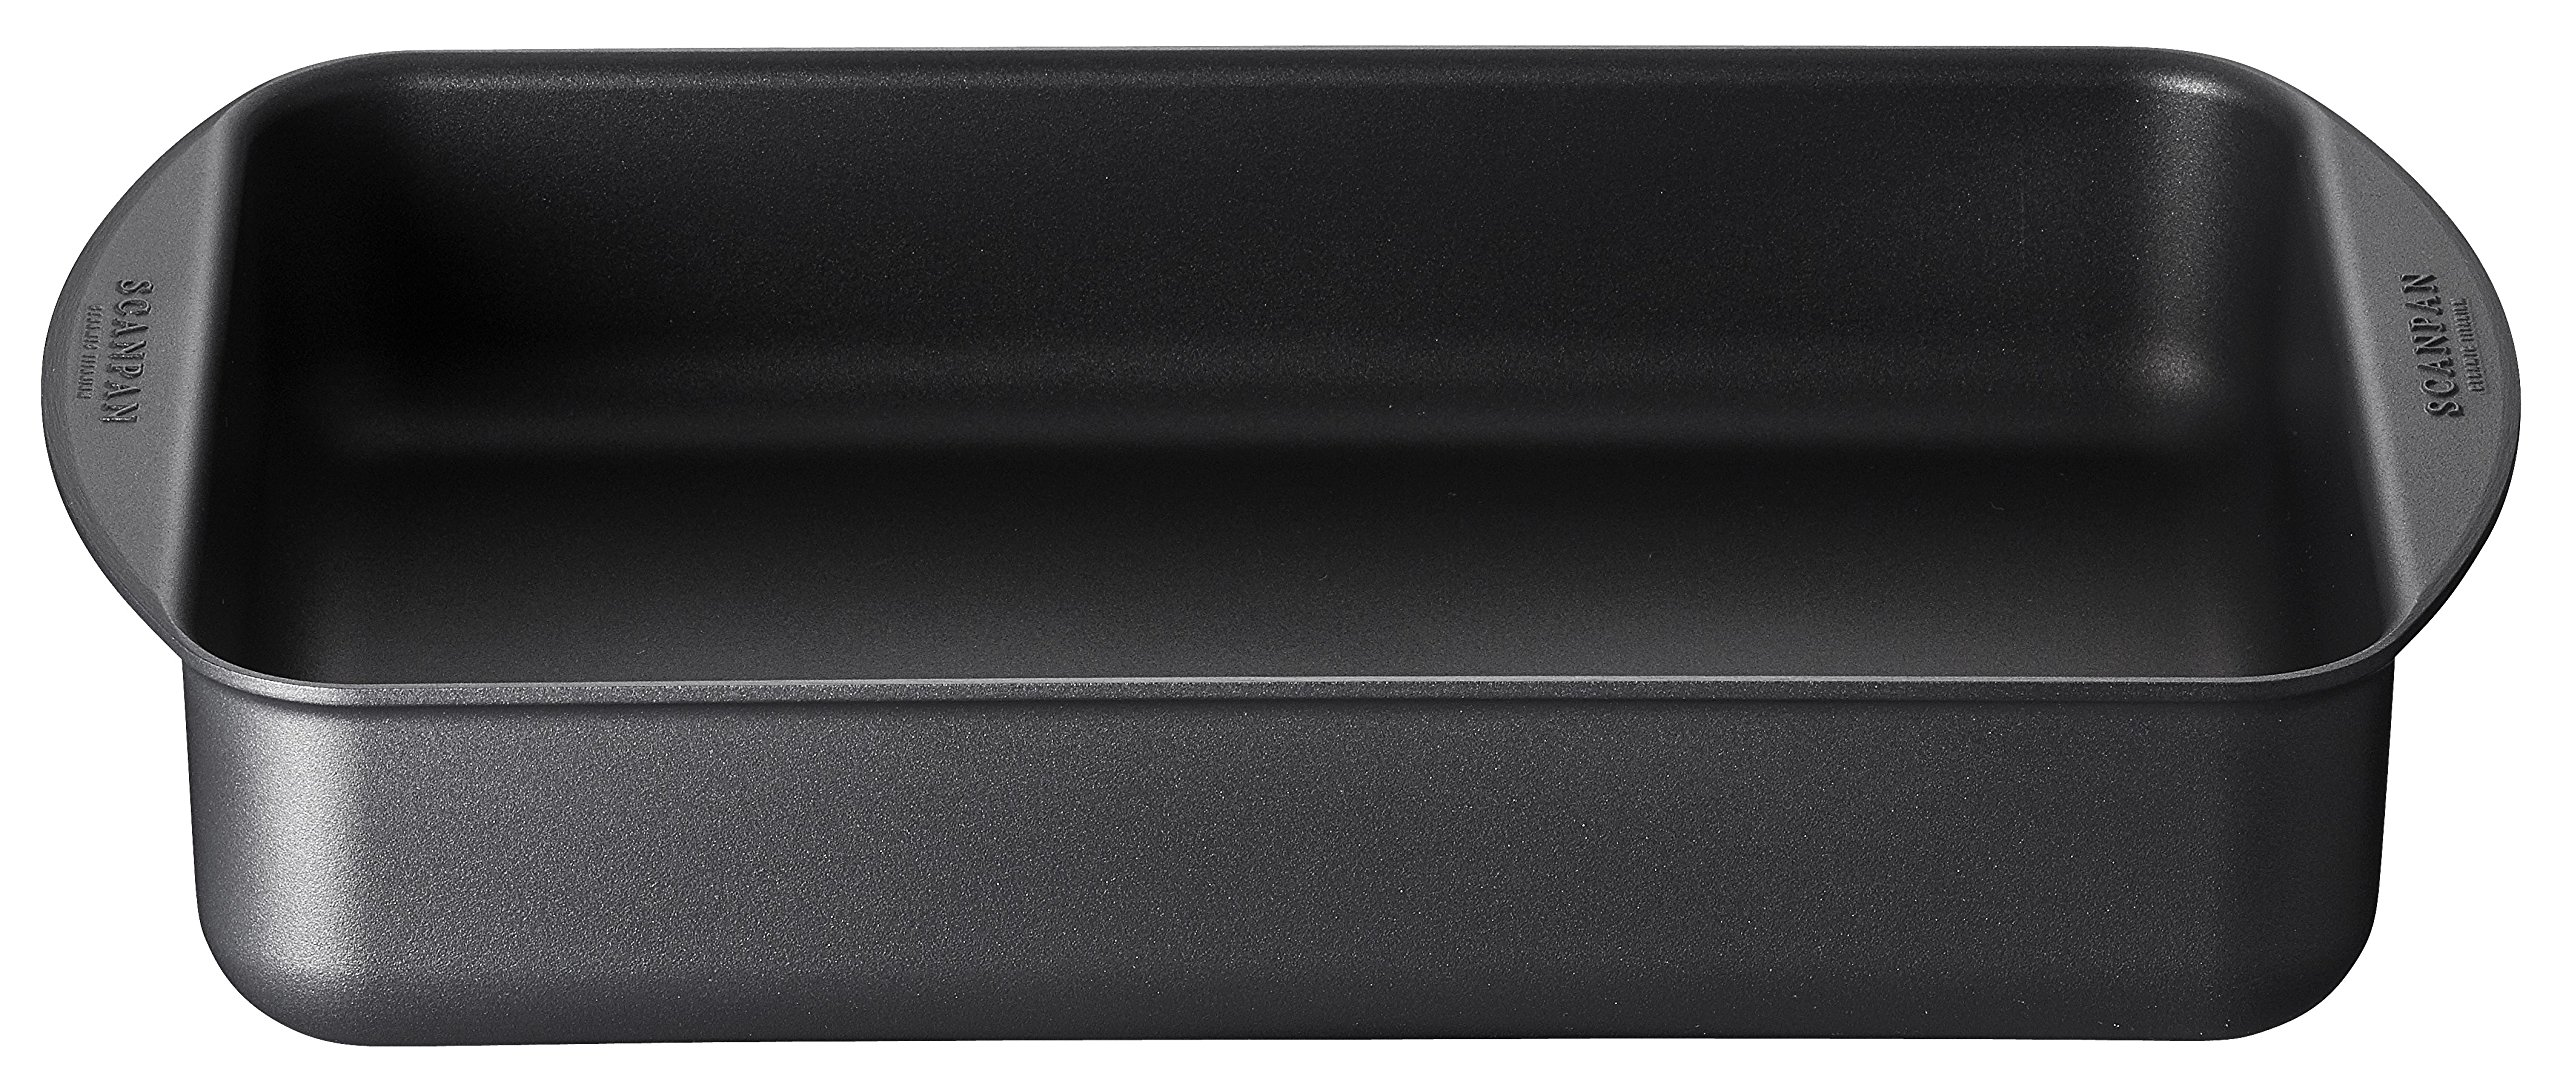 Scanpan Classic Roasting Pan, 3.25 QT, 13.5'' x 8.75'' by Scanpan (Image #2)